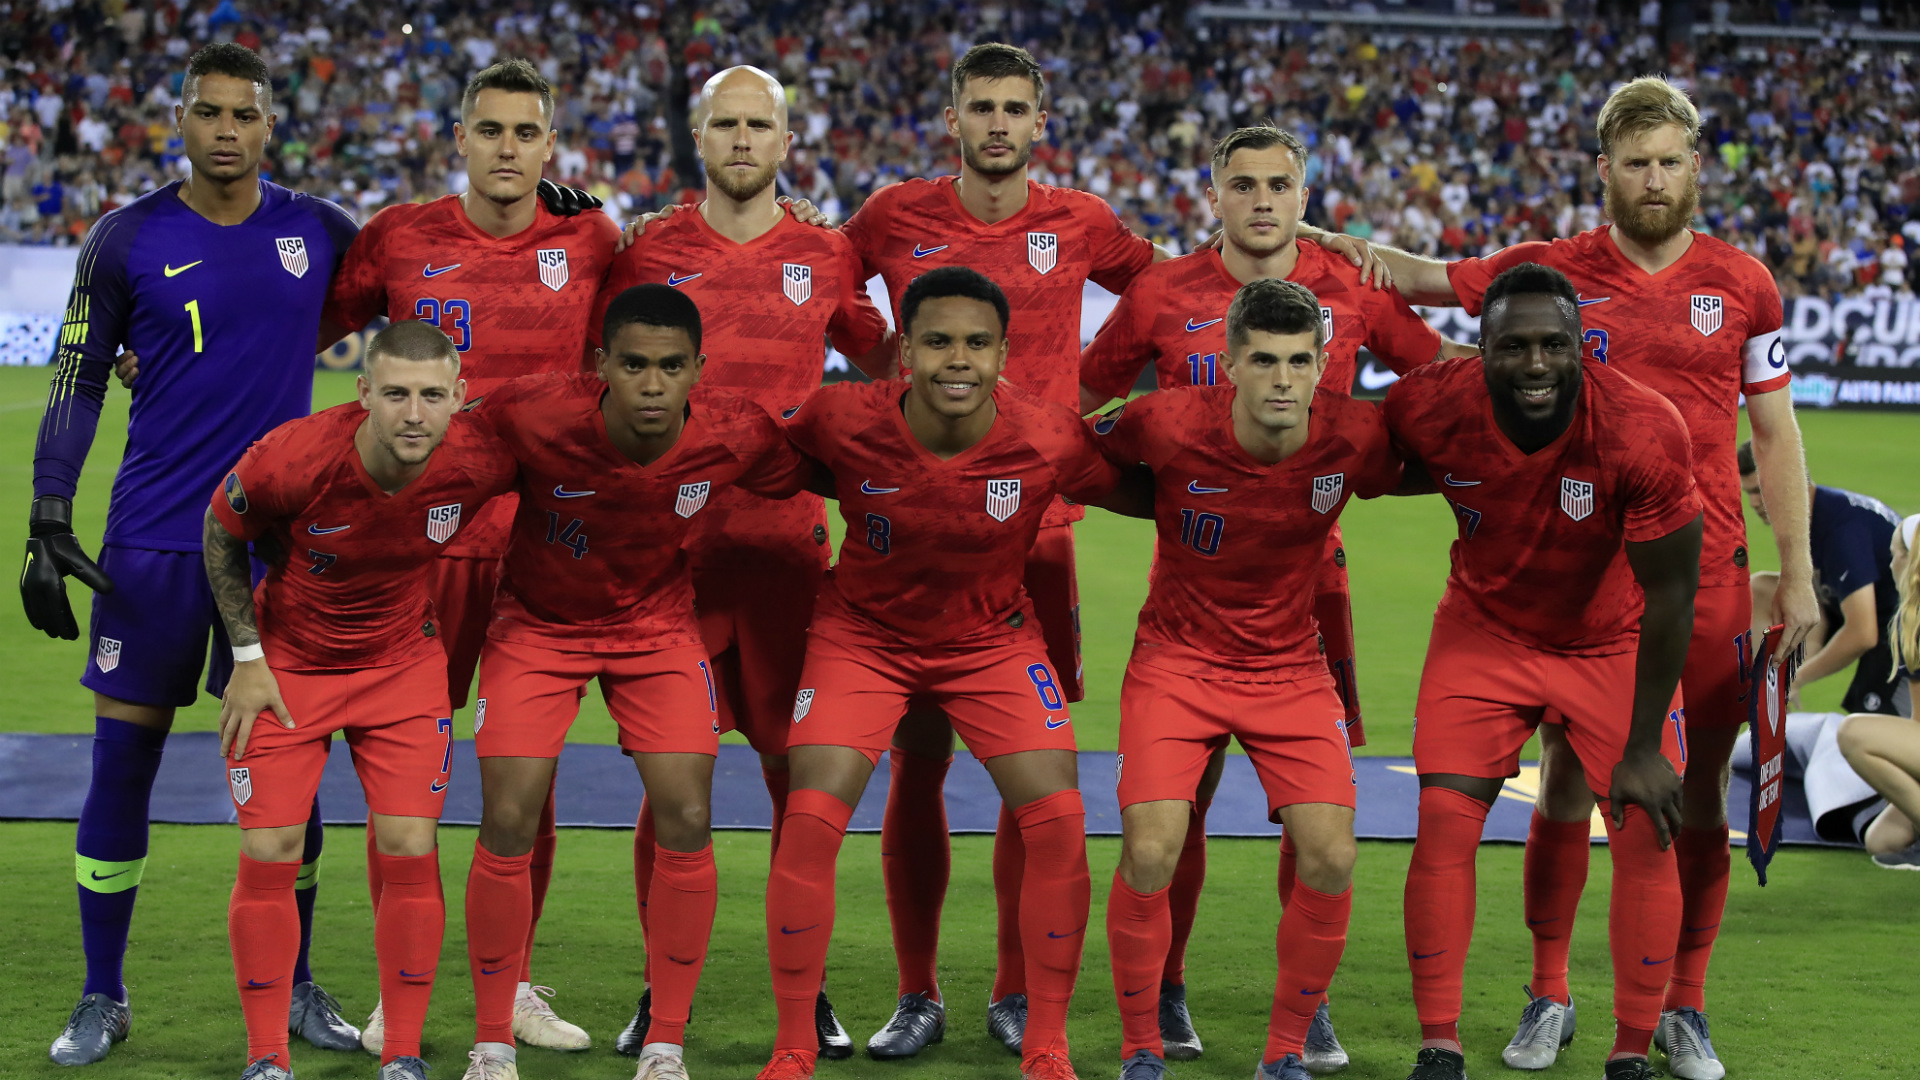 Gold Cup final: Pulisic, Altidore headline USMNT squad to